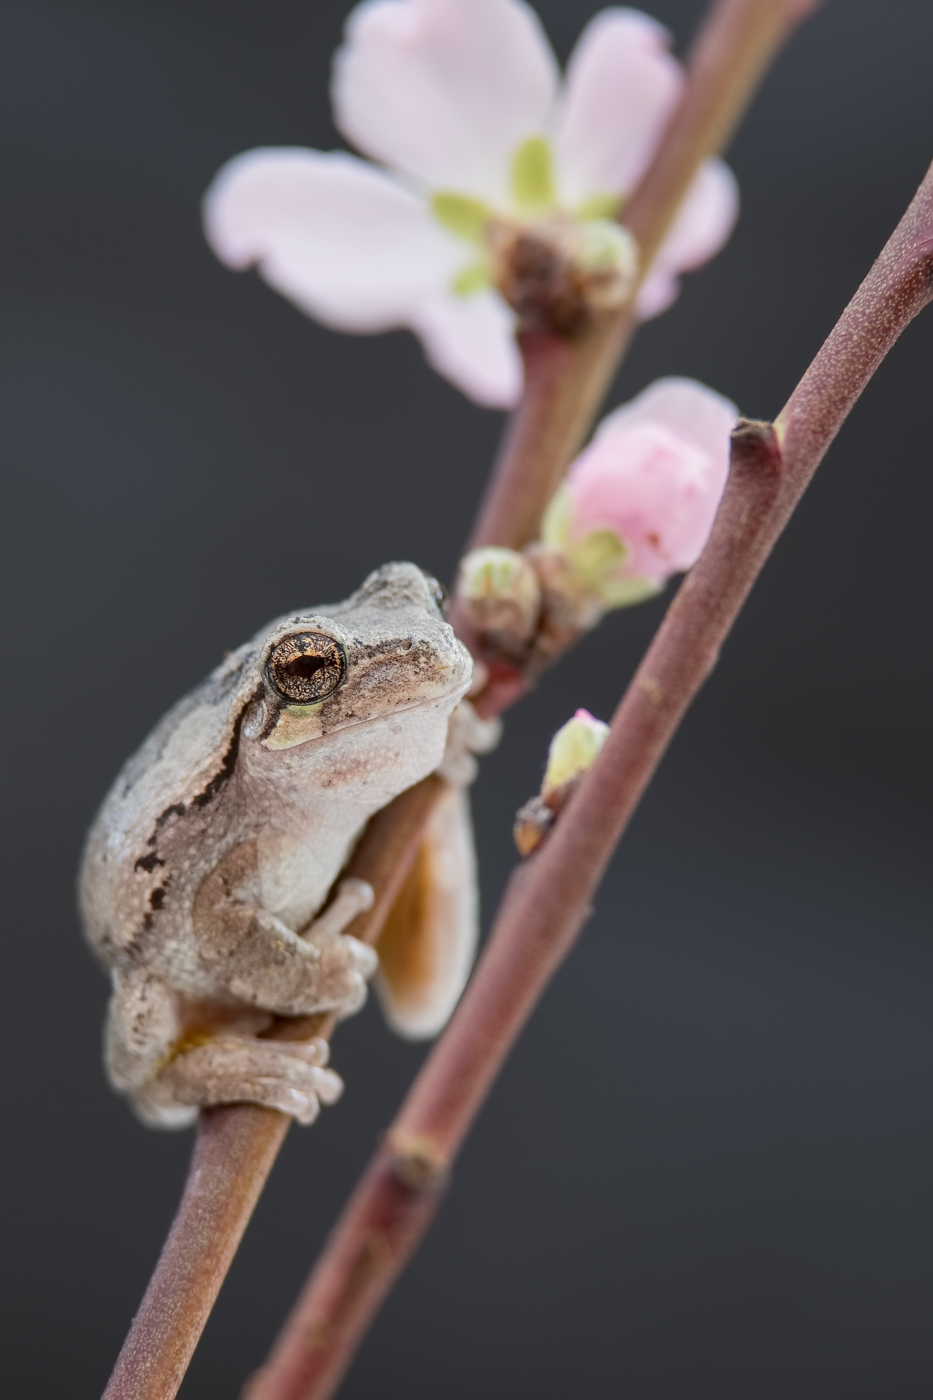 Gray Tree Frog and Cherry Blossoms Nikon D500 and Nikon 200-400mm f/4 VR